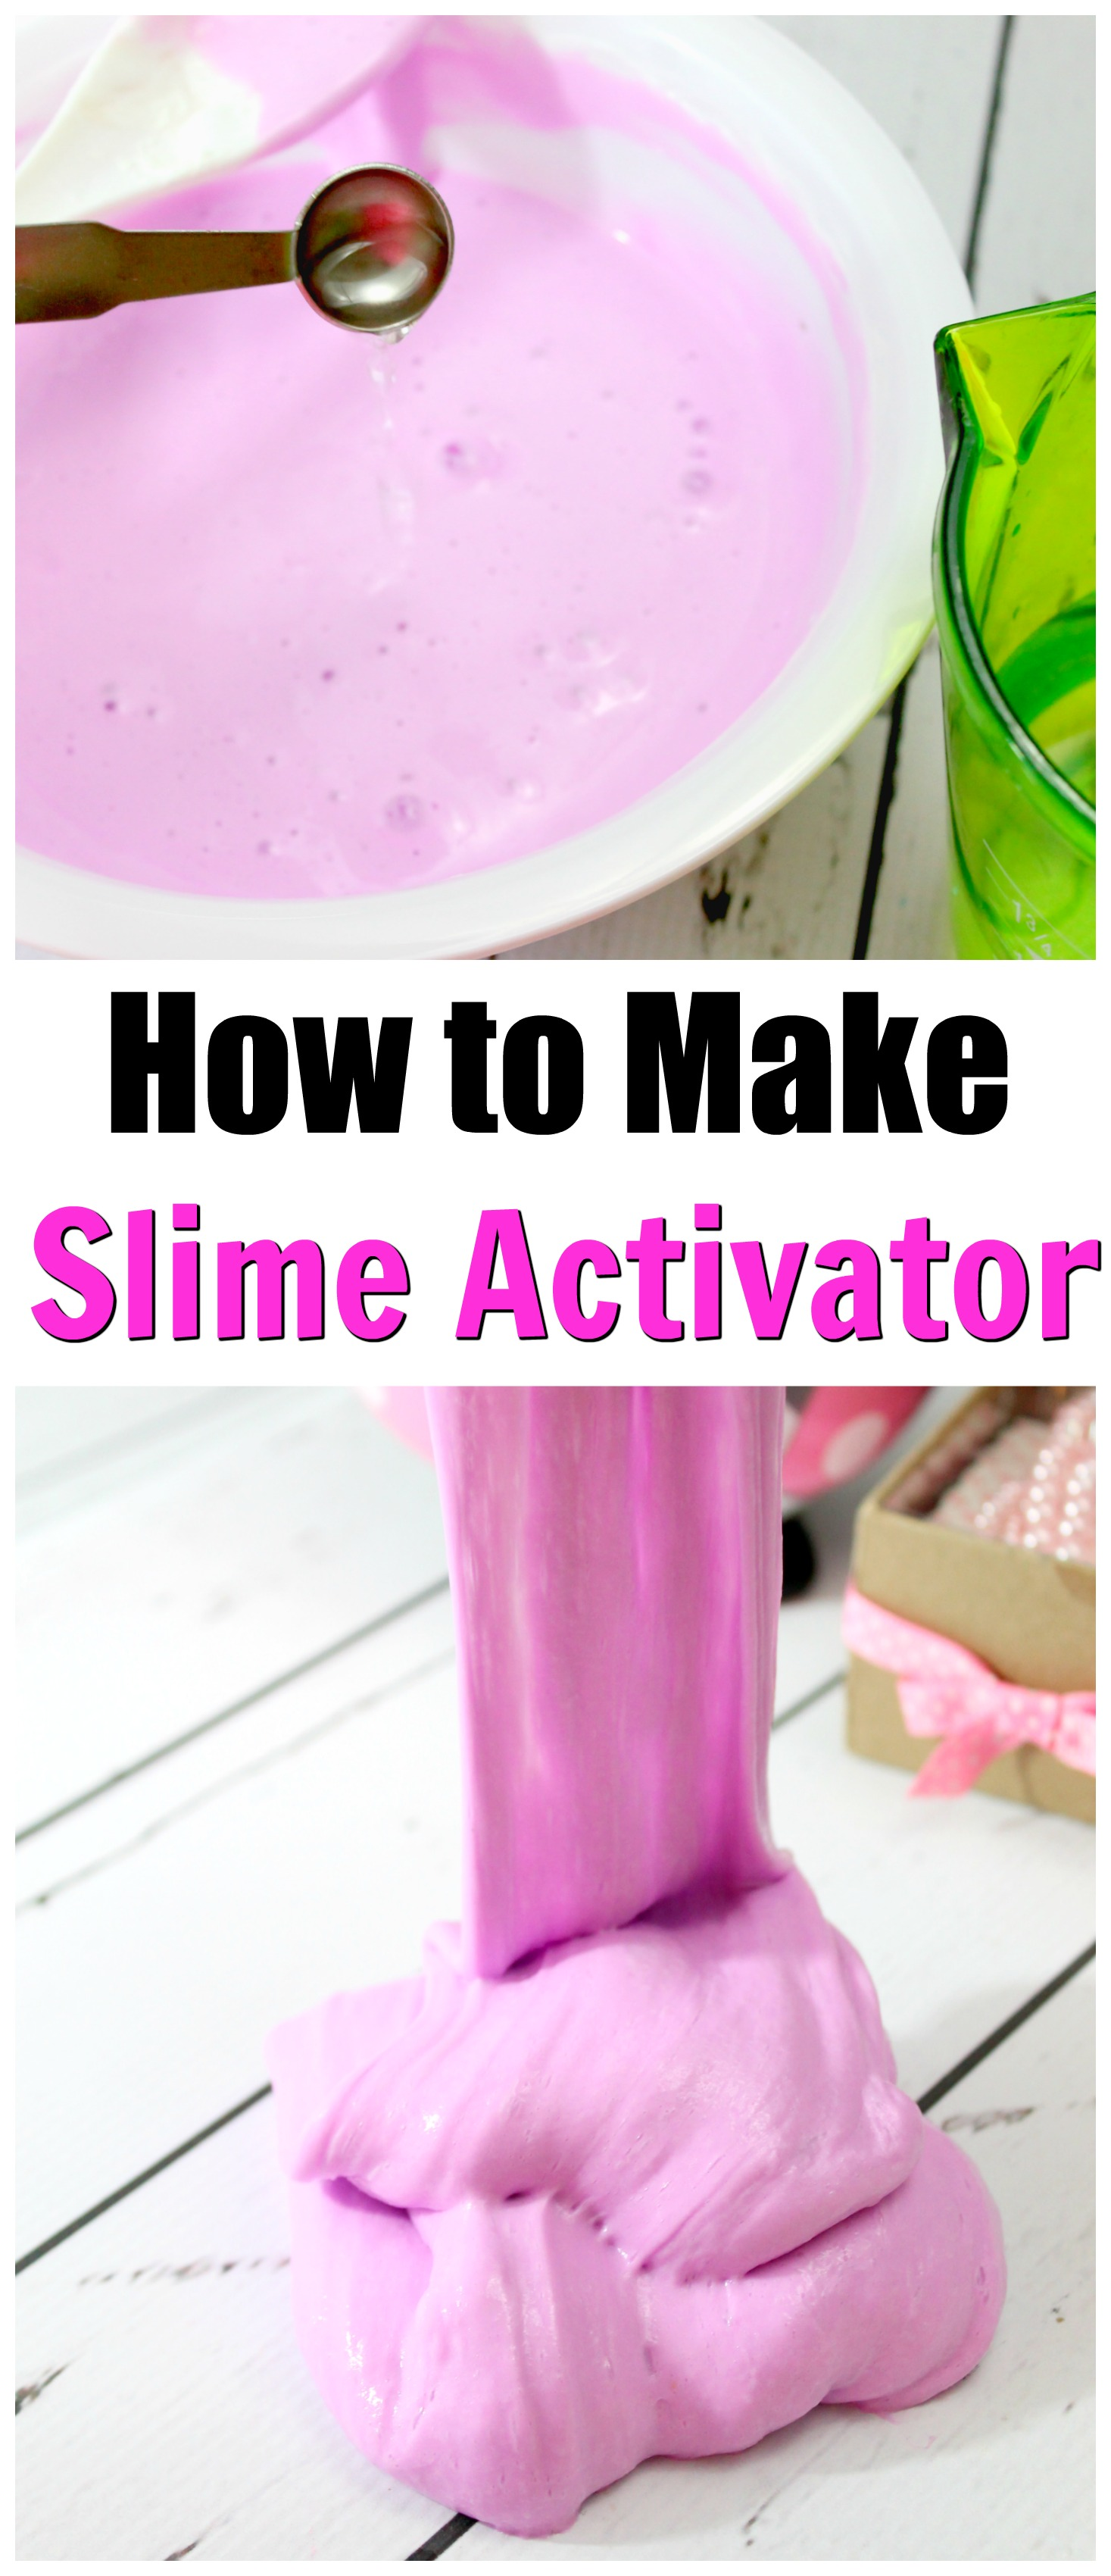 How to Make a Slime Activator with Borax - photo#33